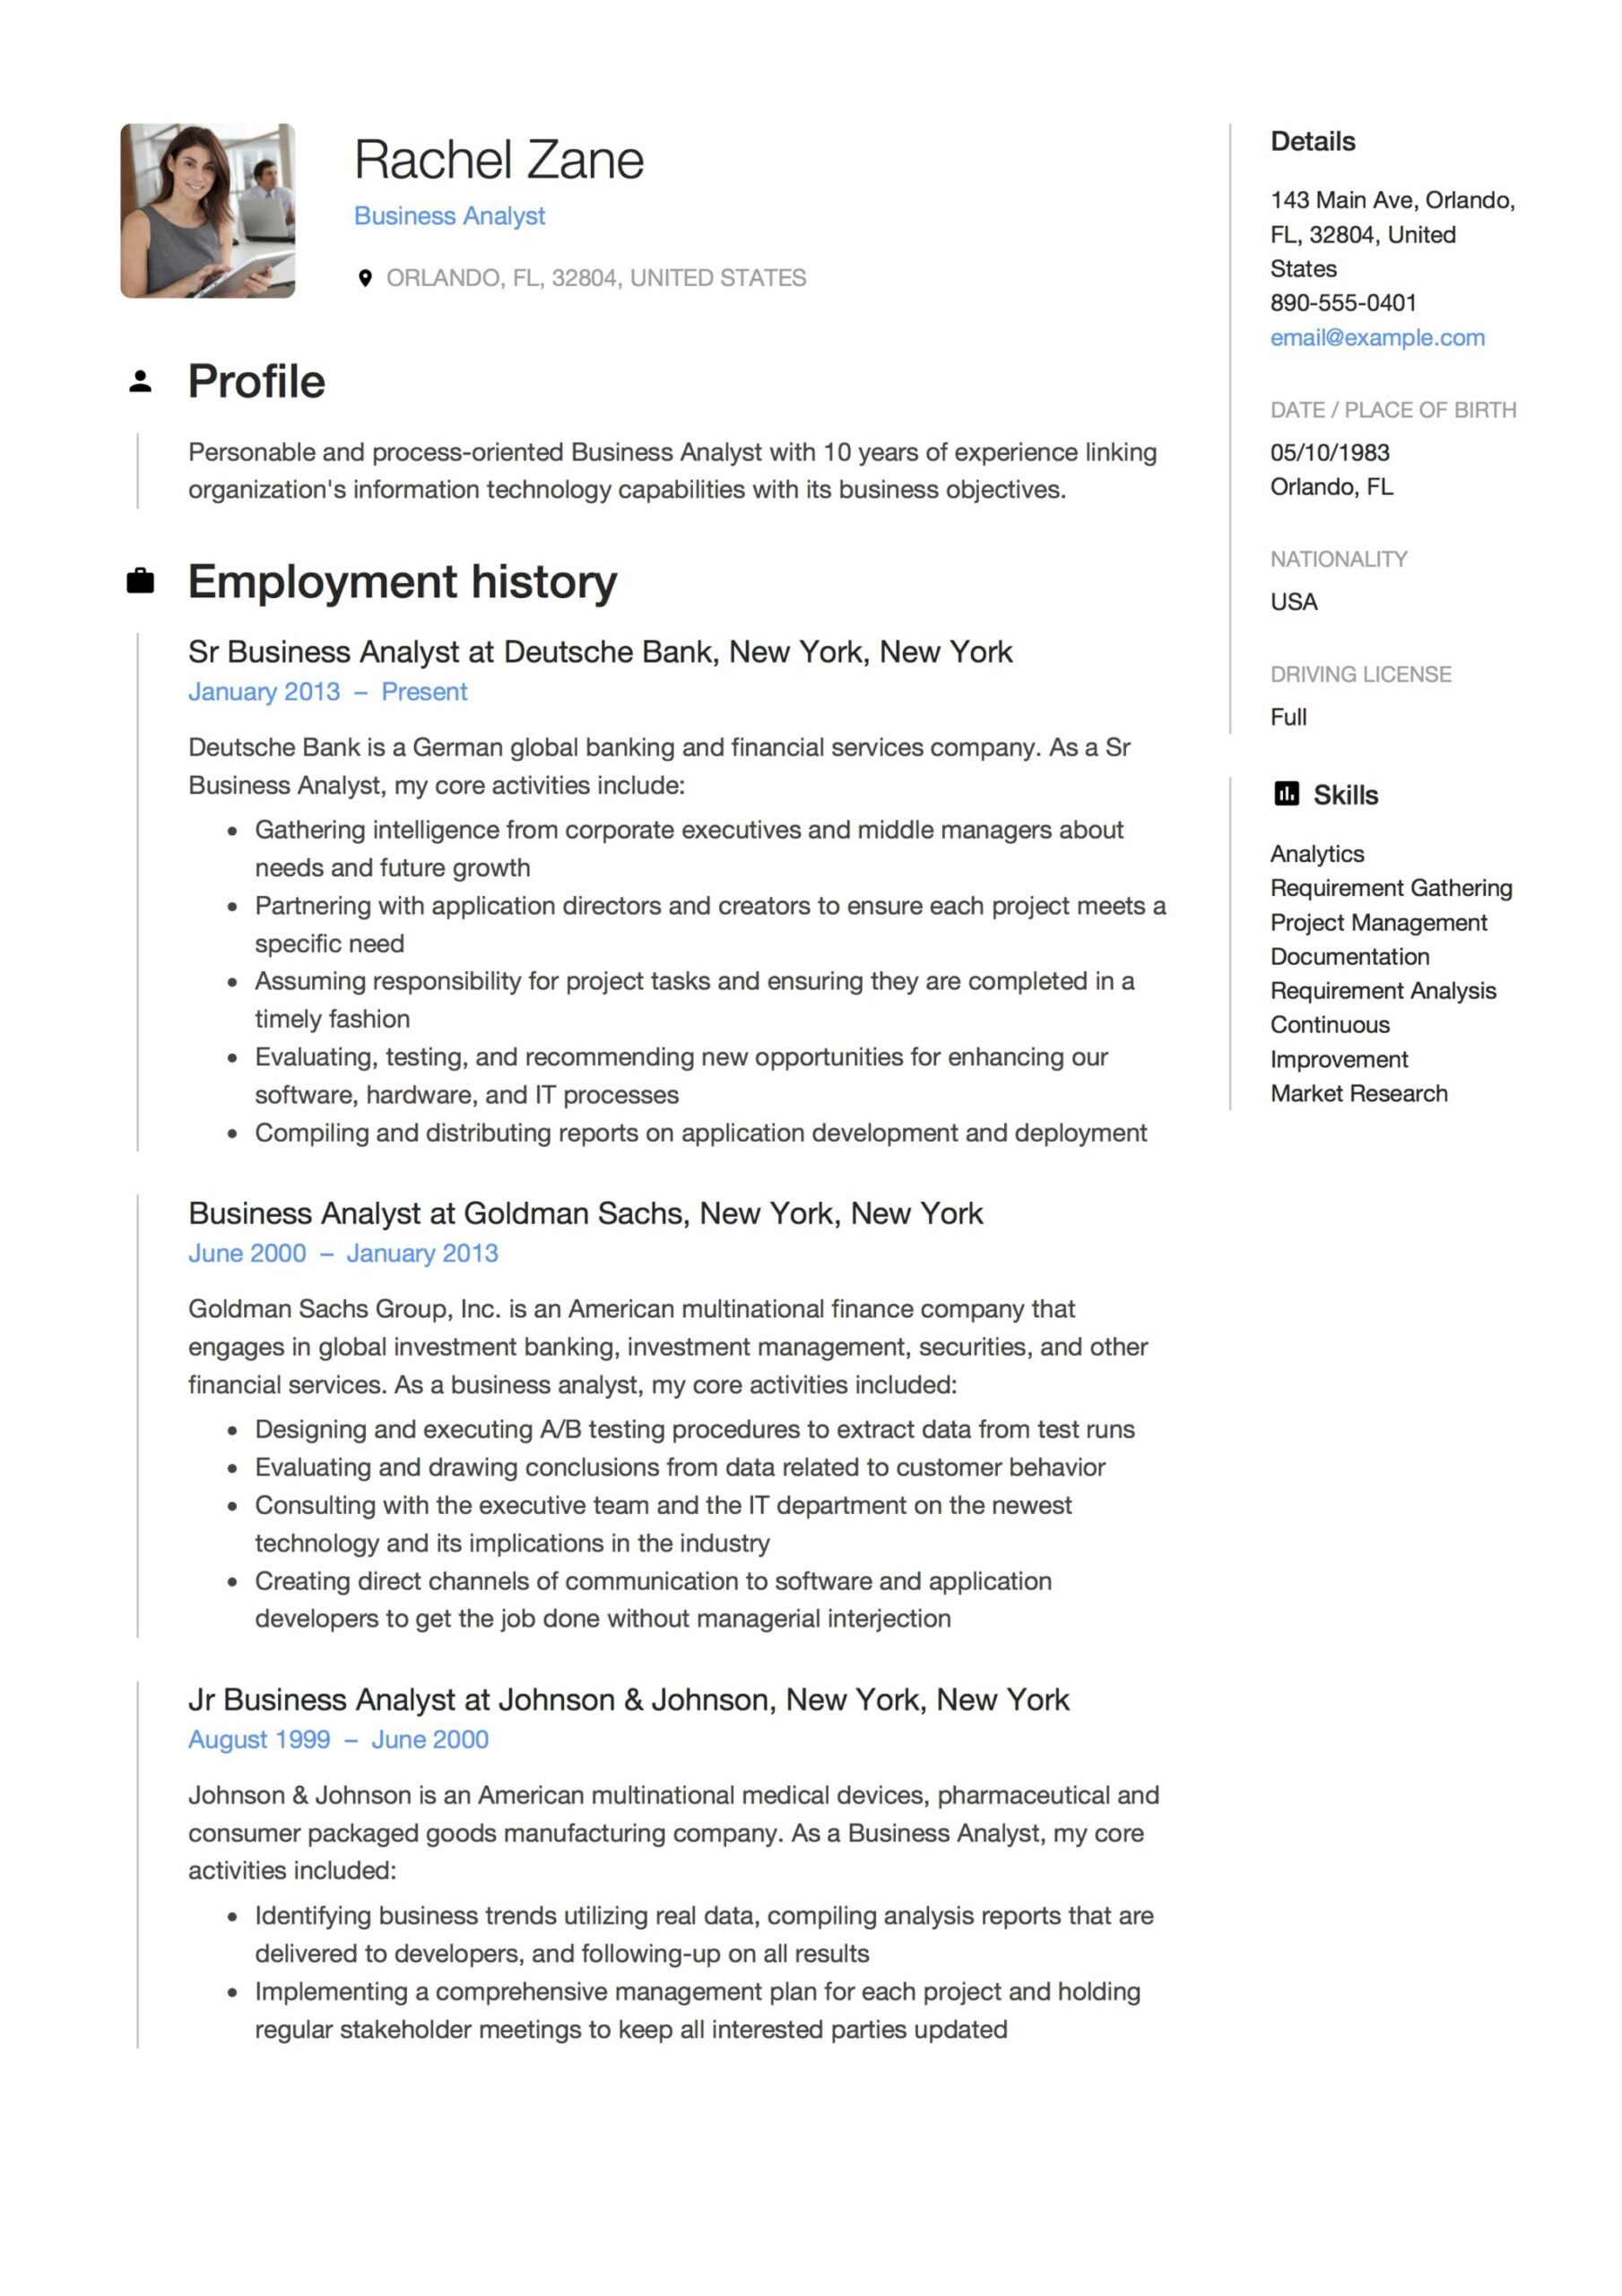 business analyst resume guide templates pdf free downloads with testing experience sample Resume Business Analyst Resume With Testing Experience